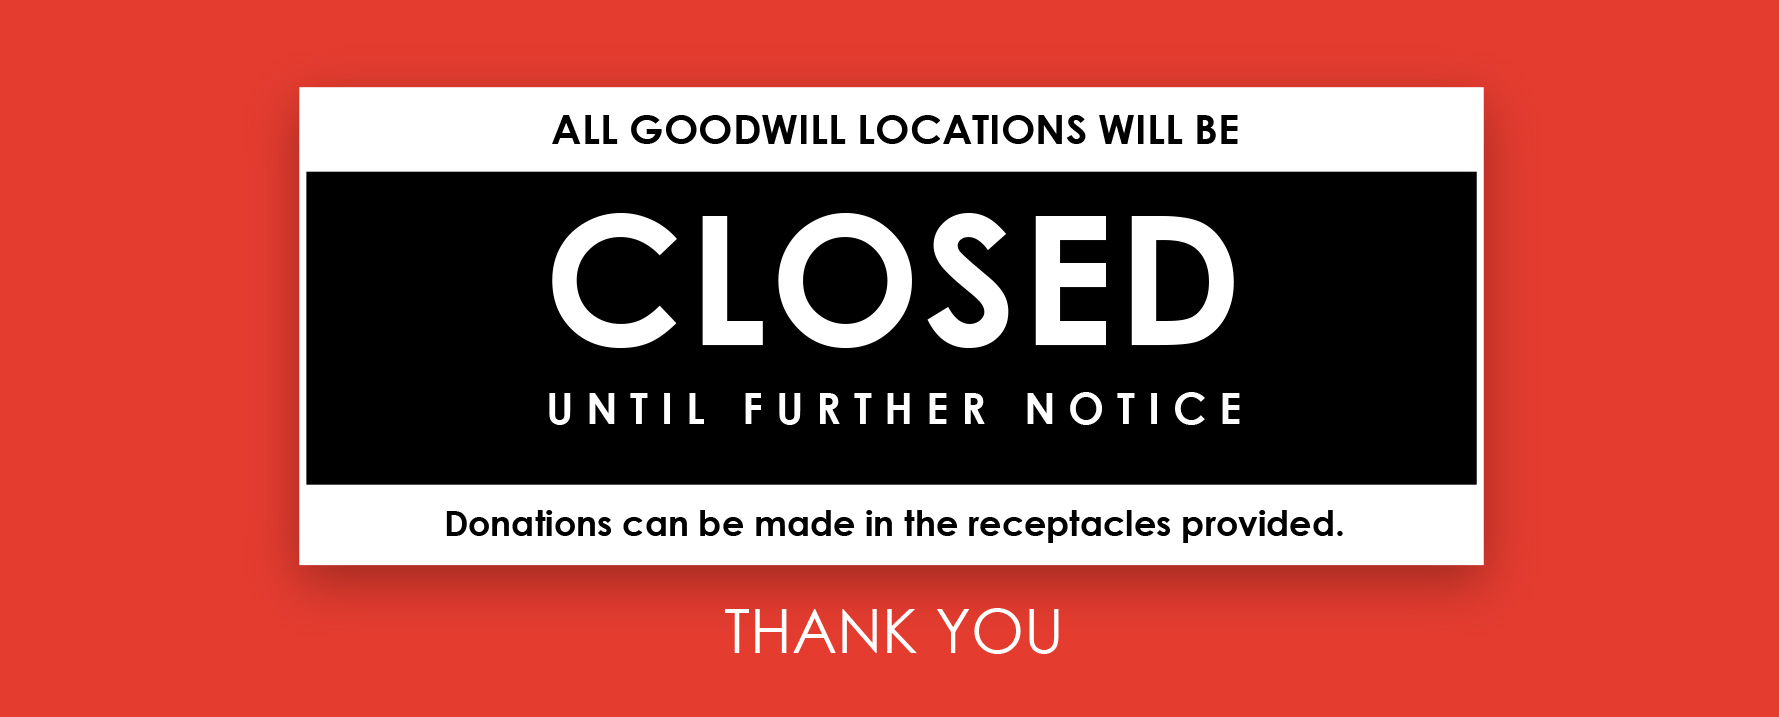 Goodwill Temporarily Closed